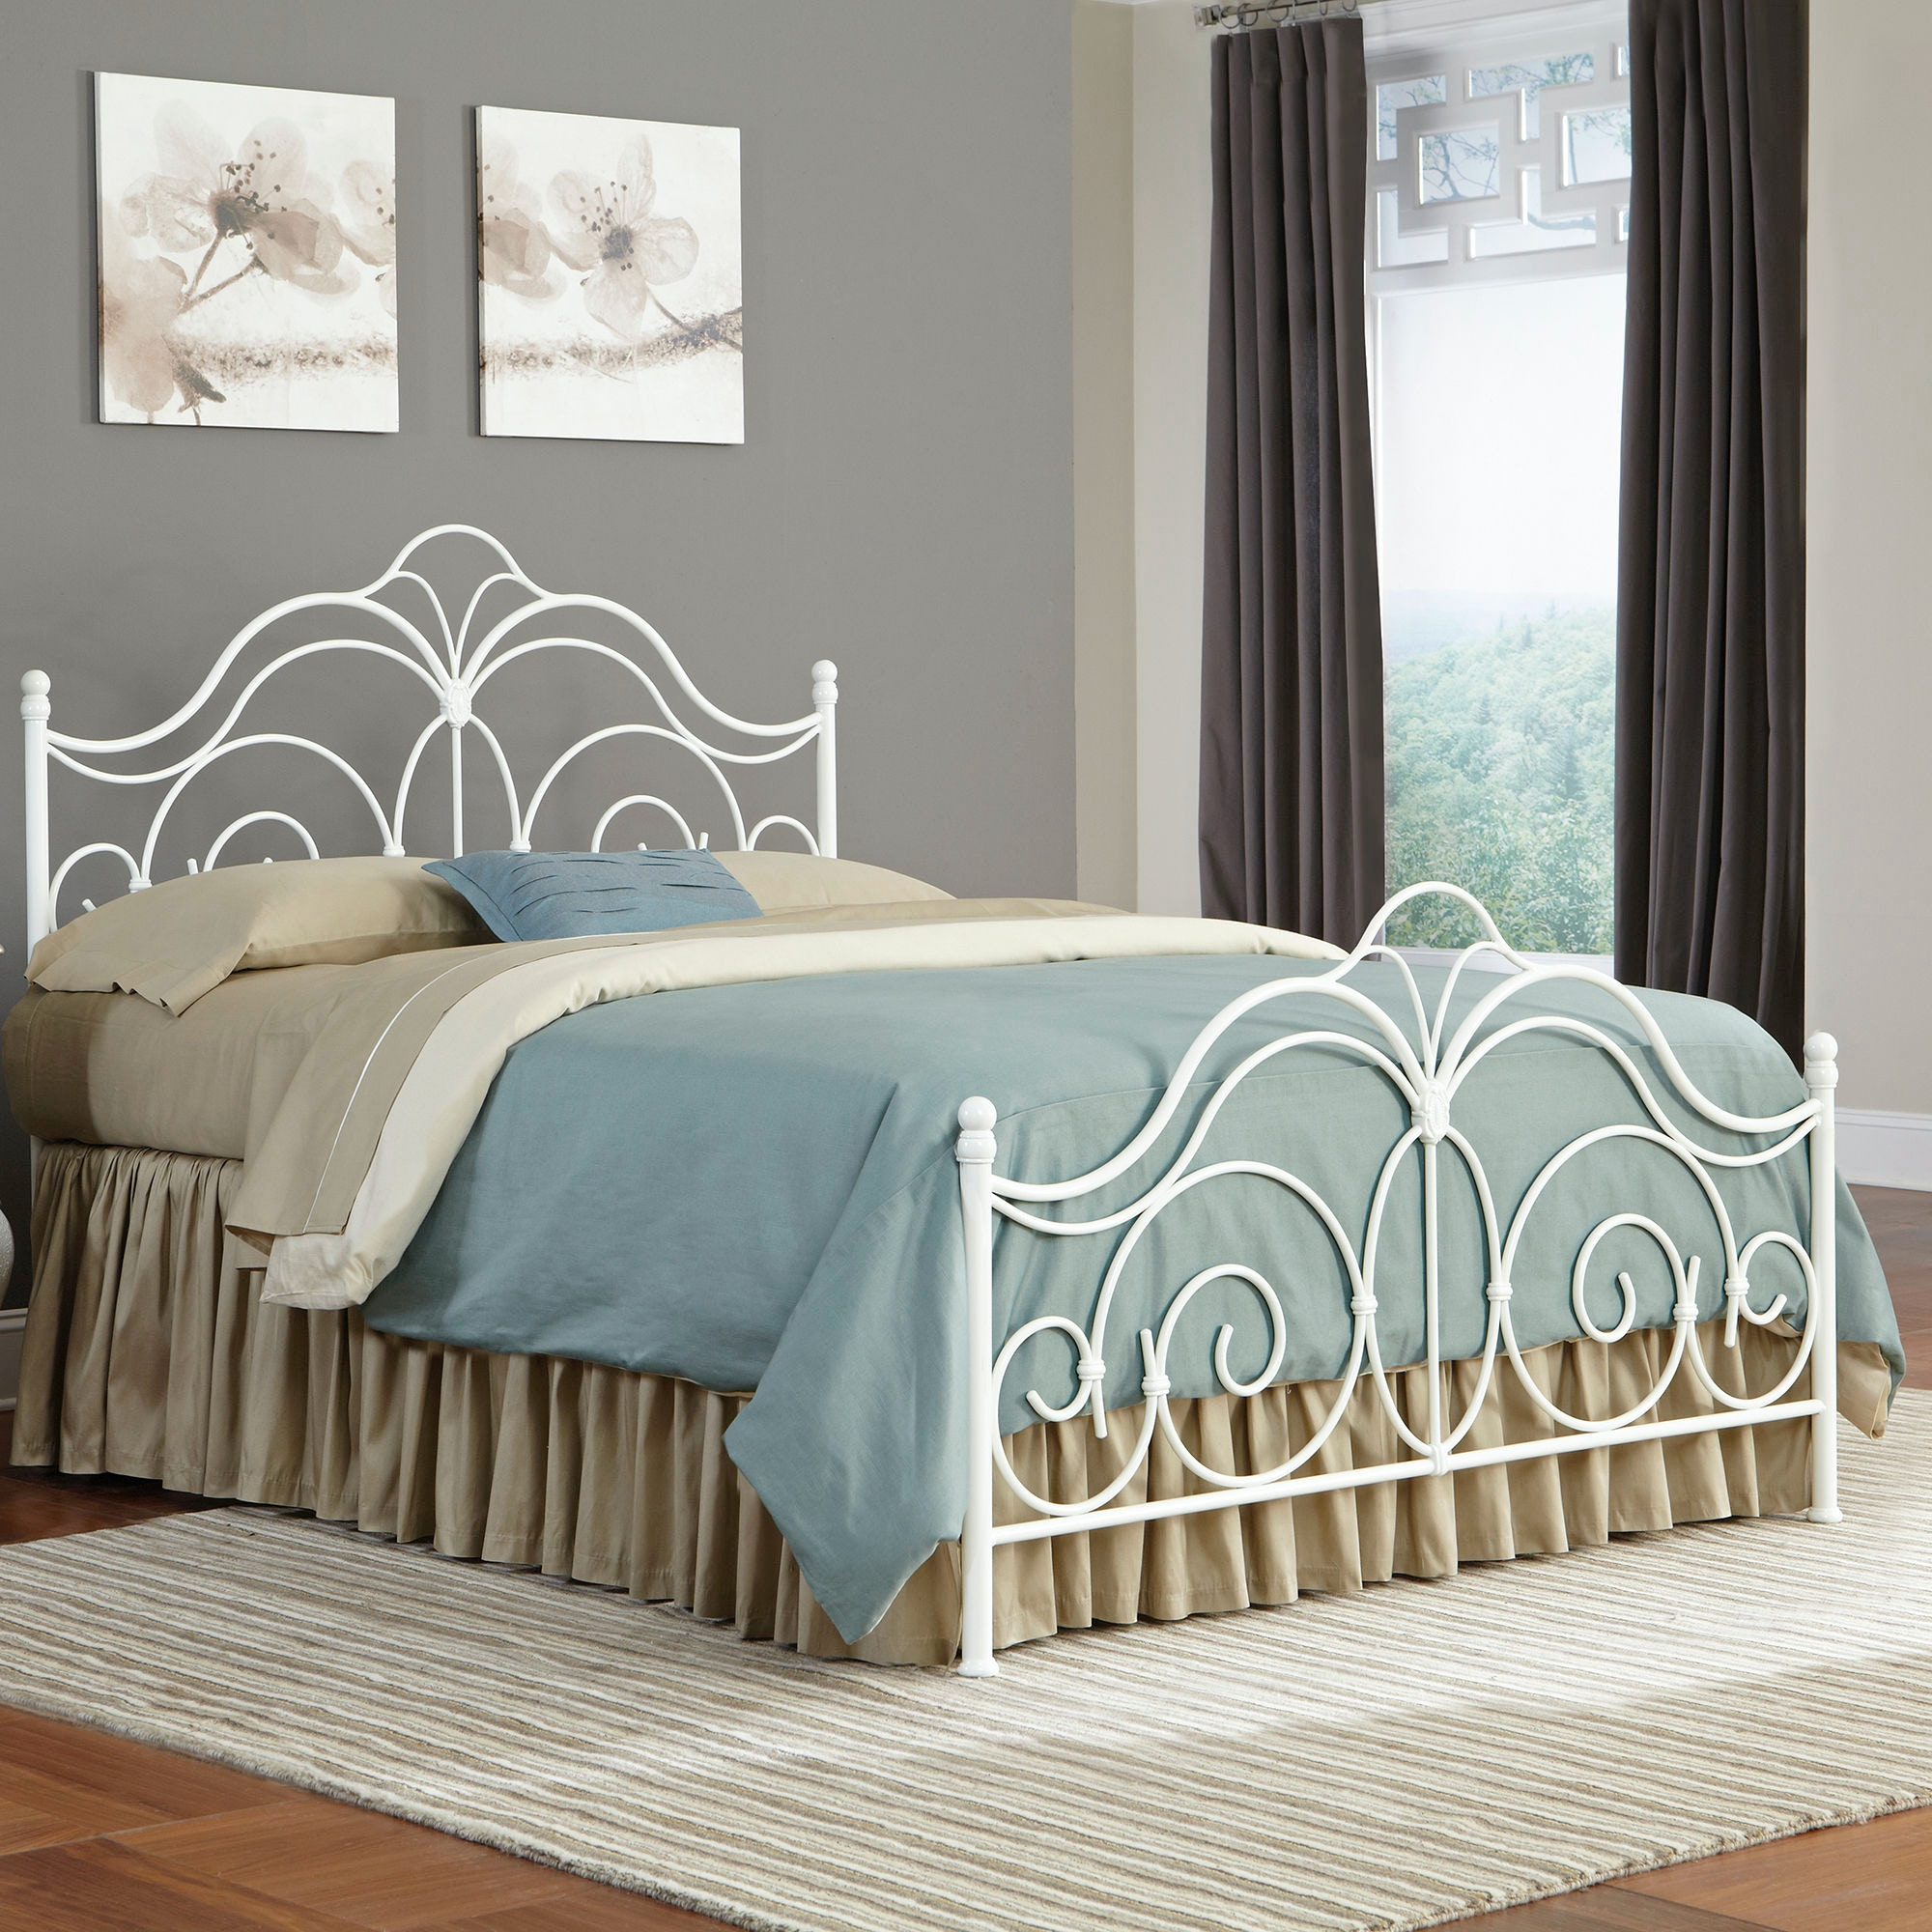 Fashion Bed Group Rhapsody Complete Bed With Curved Grill Design And Finial  Posts, Glossy White